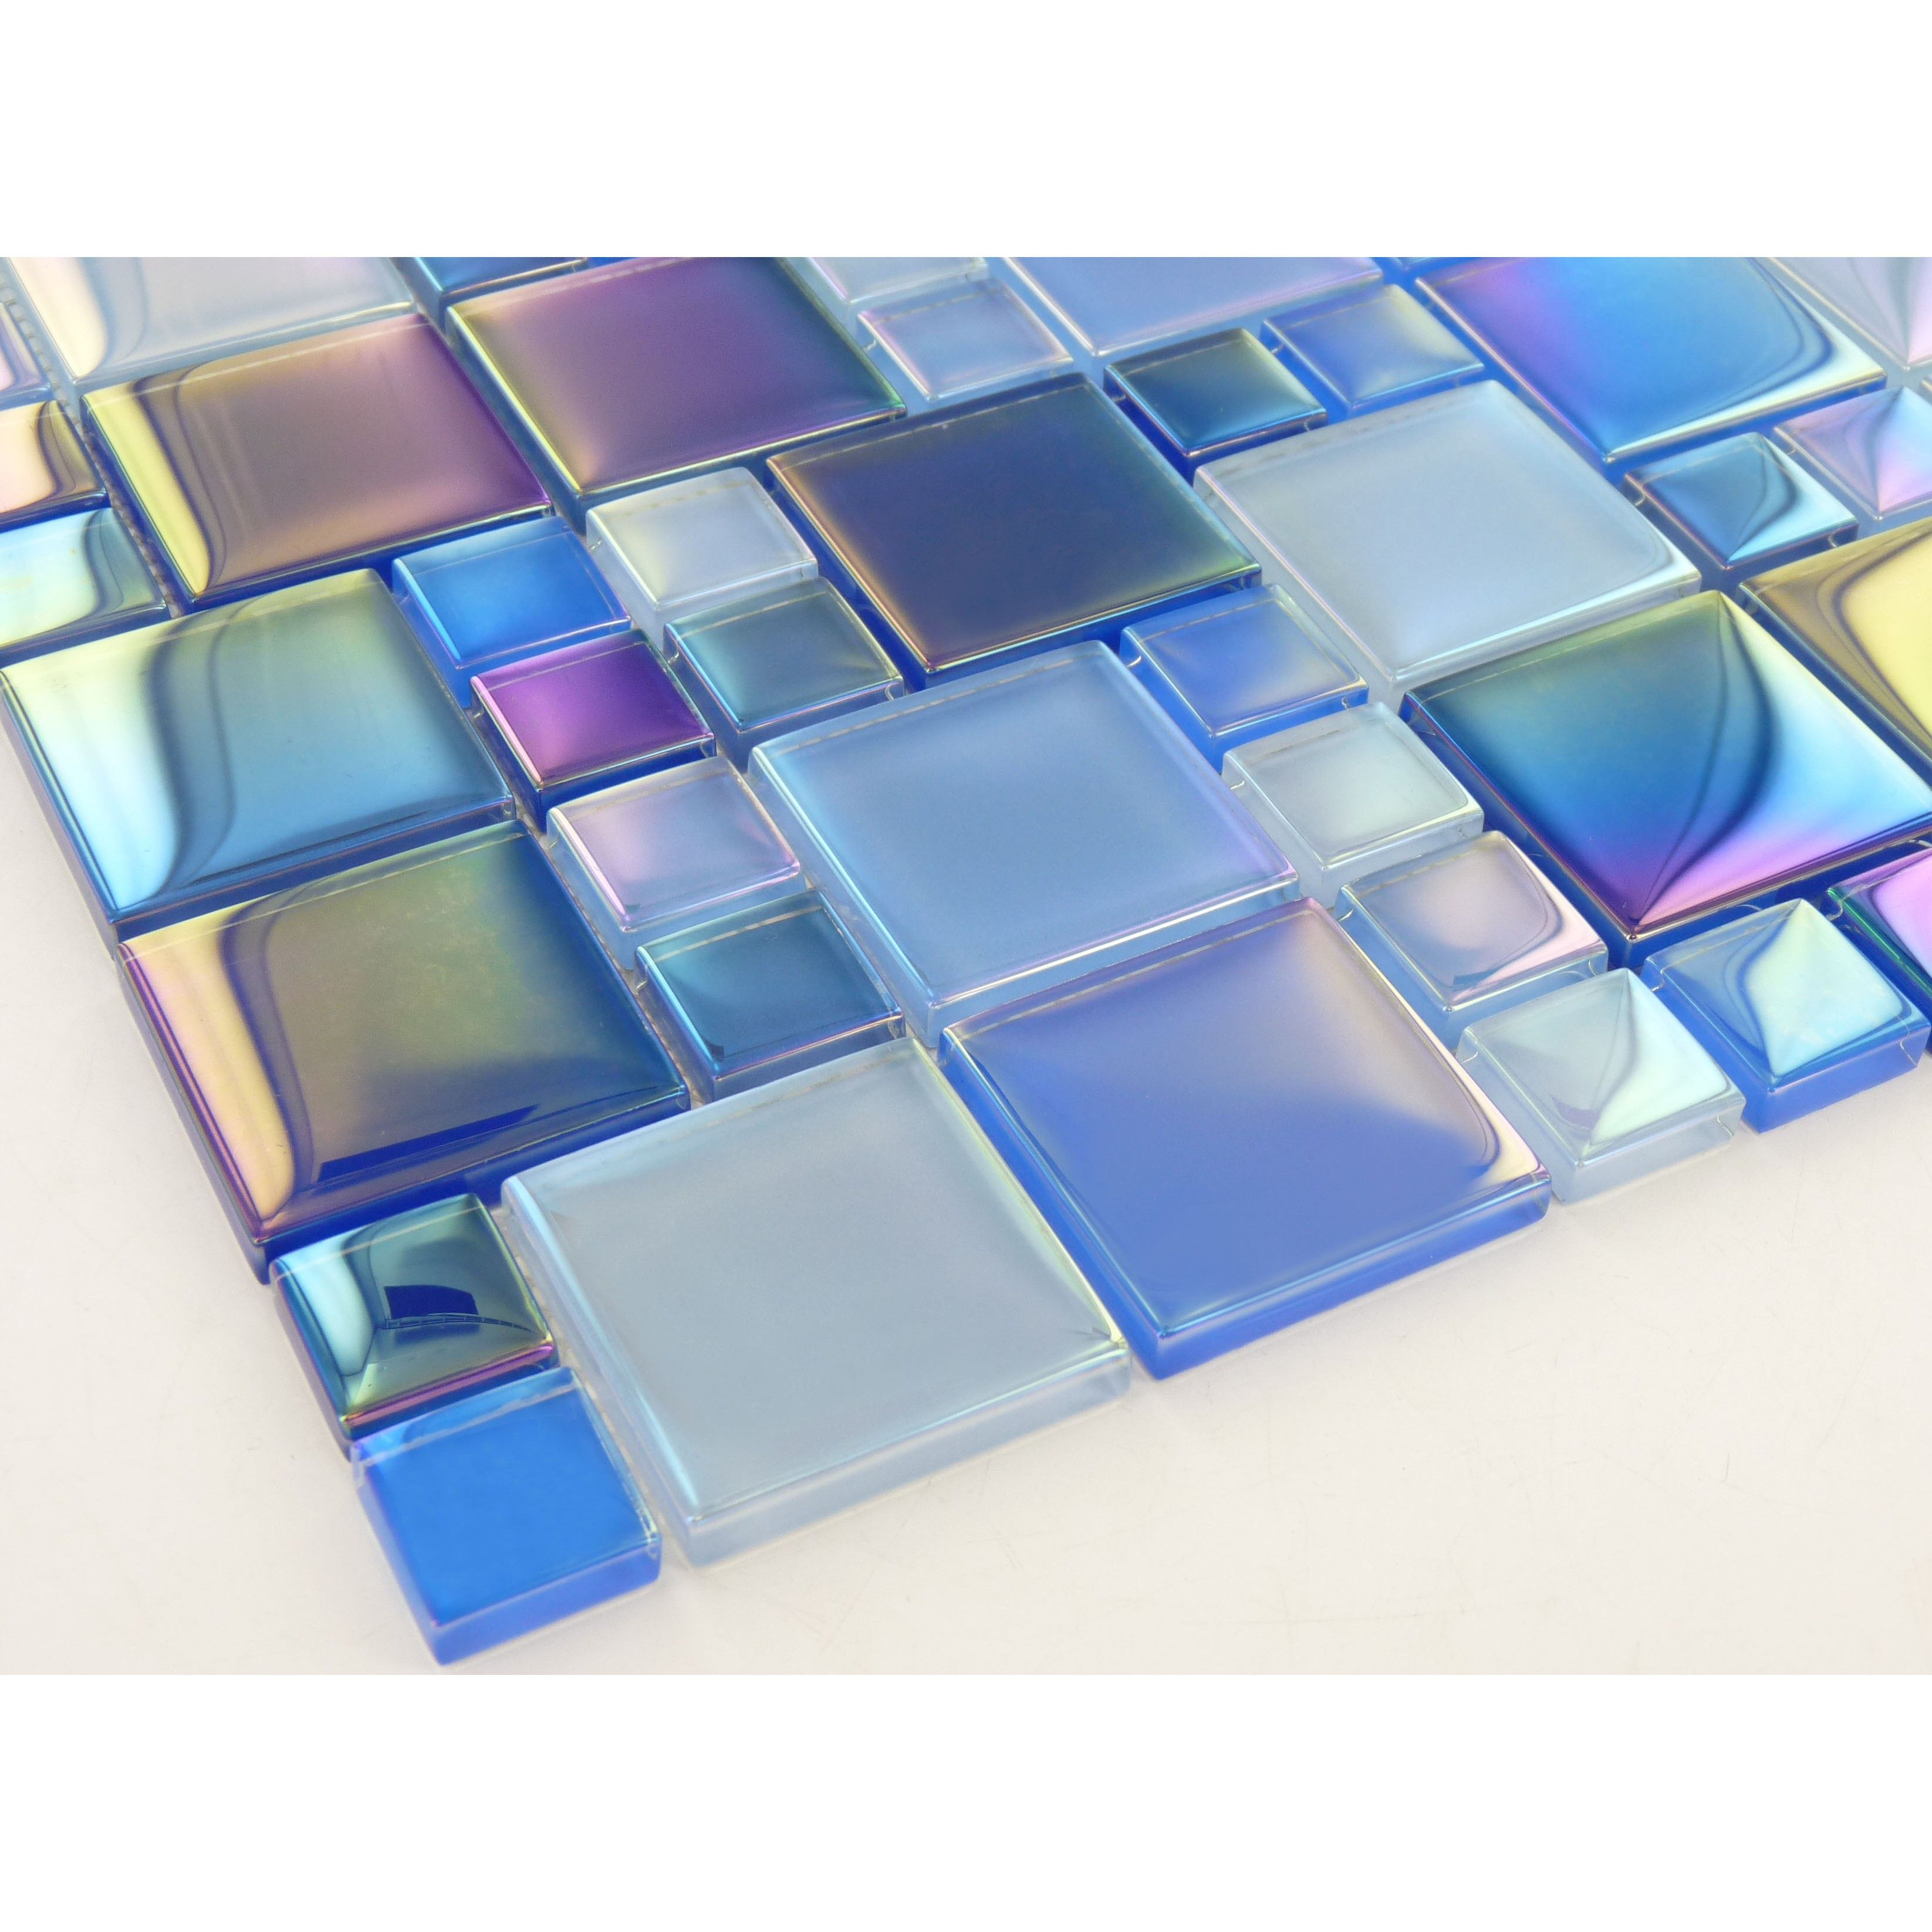 Tesoro Unique Shapes Blue Glass Unique Shapes Tile Glossy Iridescent Keekeluraaqblba Iridescent Glass Tiles Glass Pool Tile Glass Pool